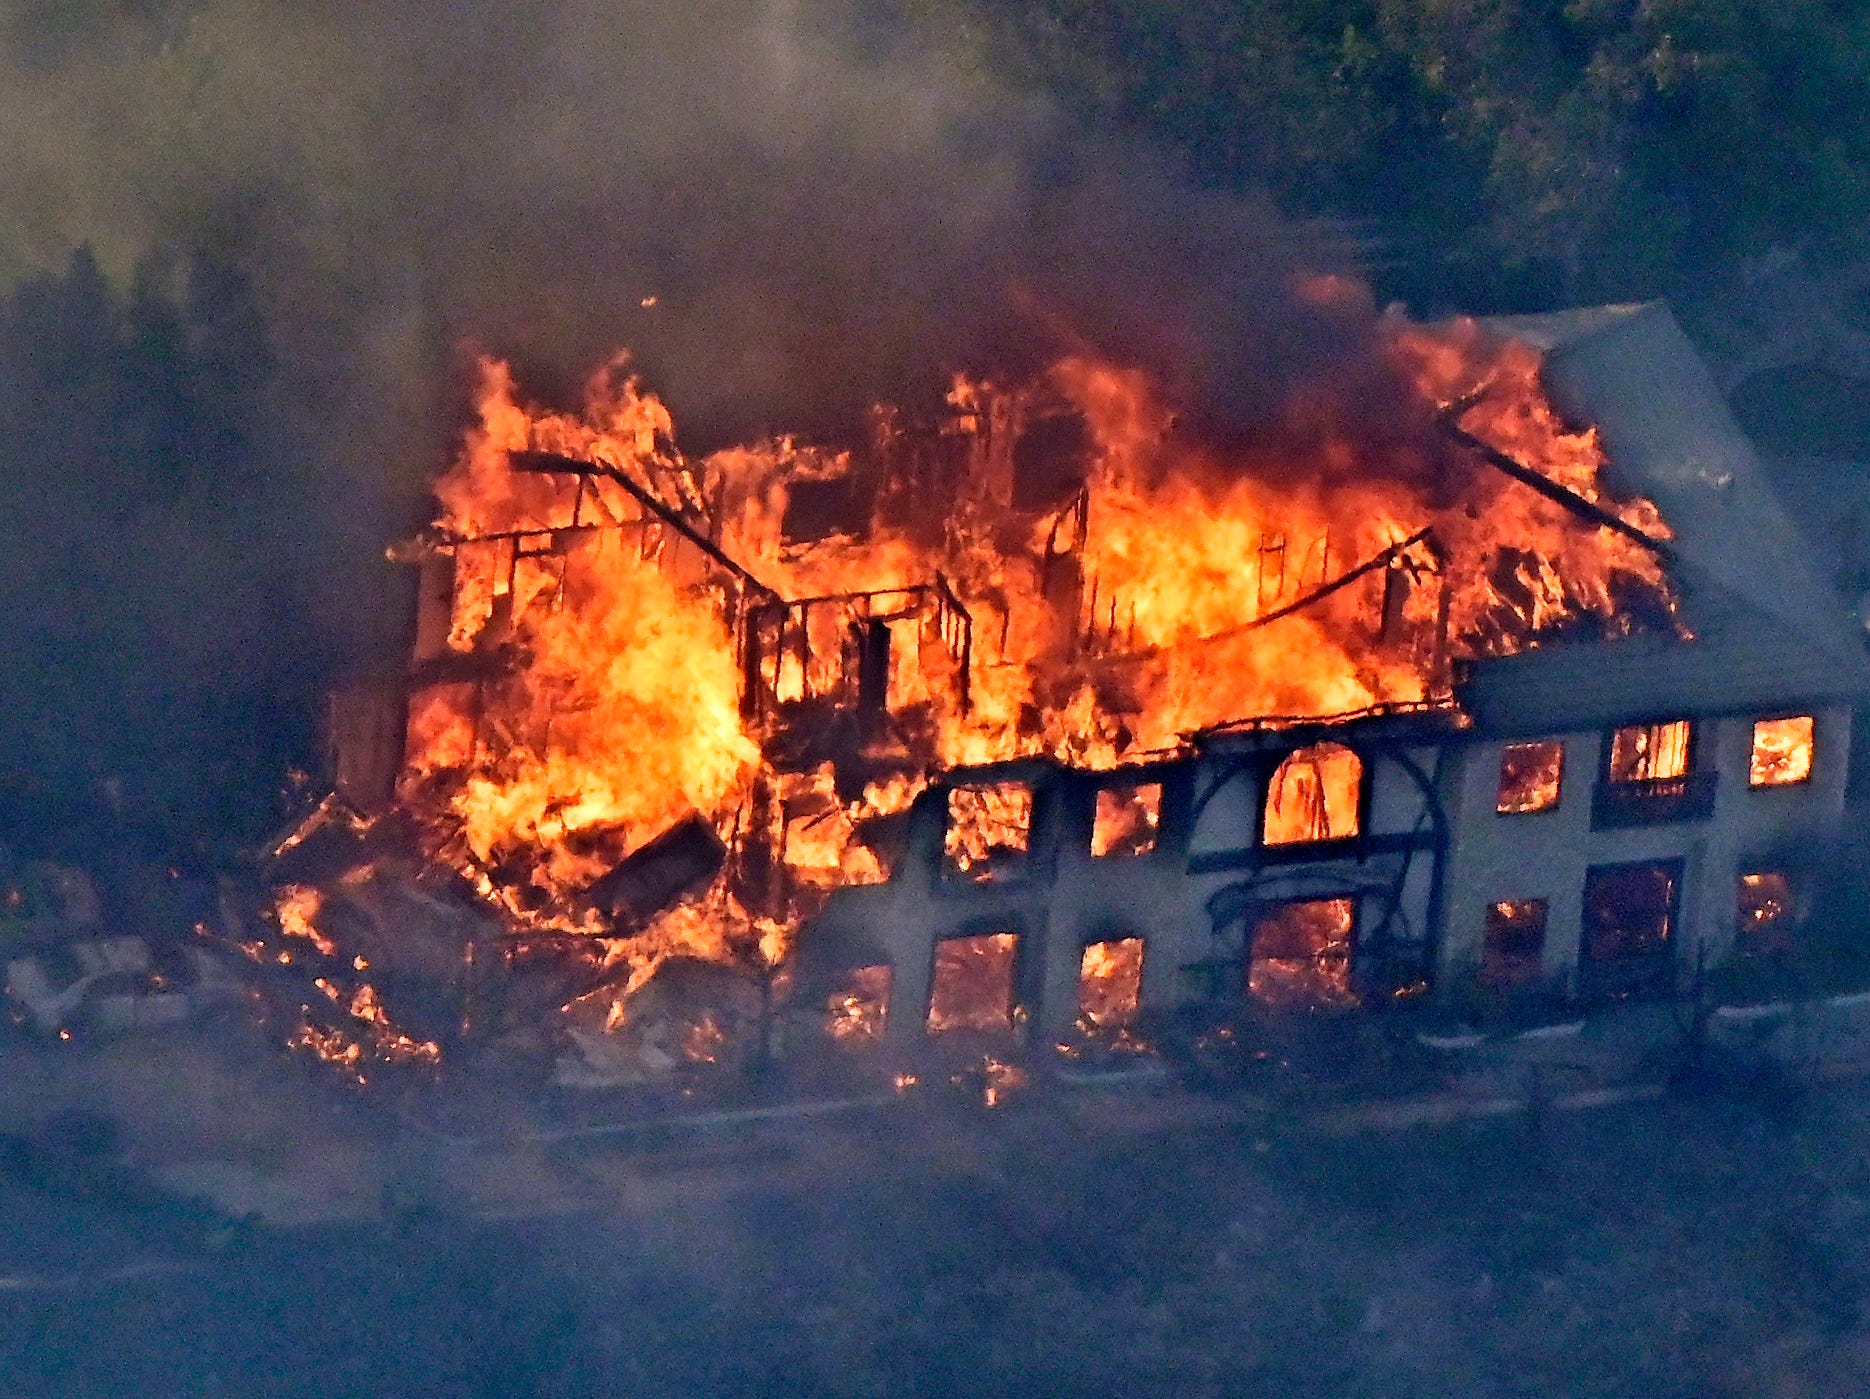 The Woolsey Fire claims a home Friday in Calabasas as it burns toward Malibu after starting a day earlier near Simi Valley.